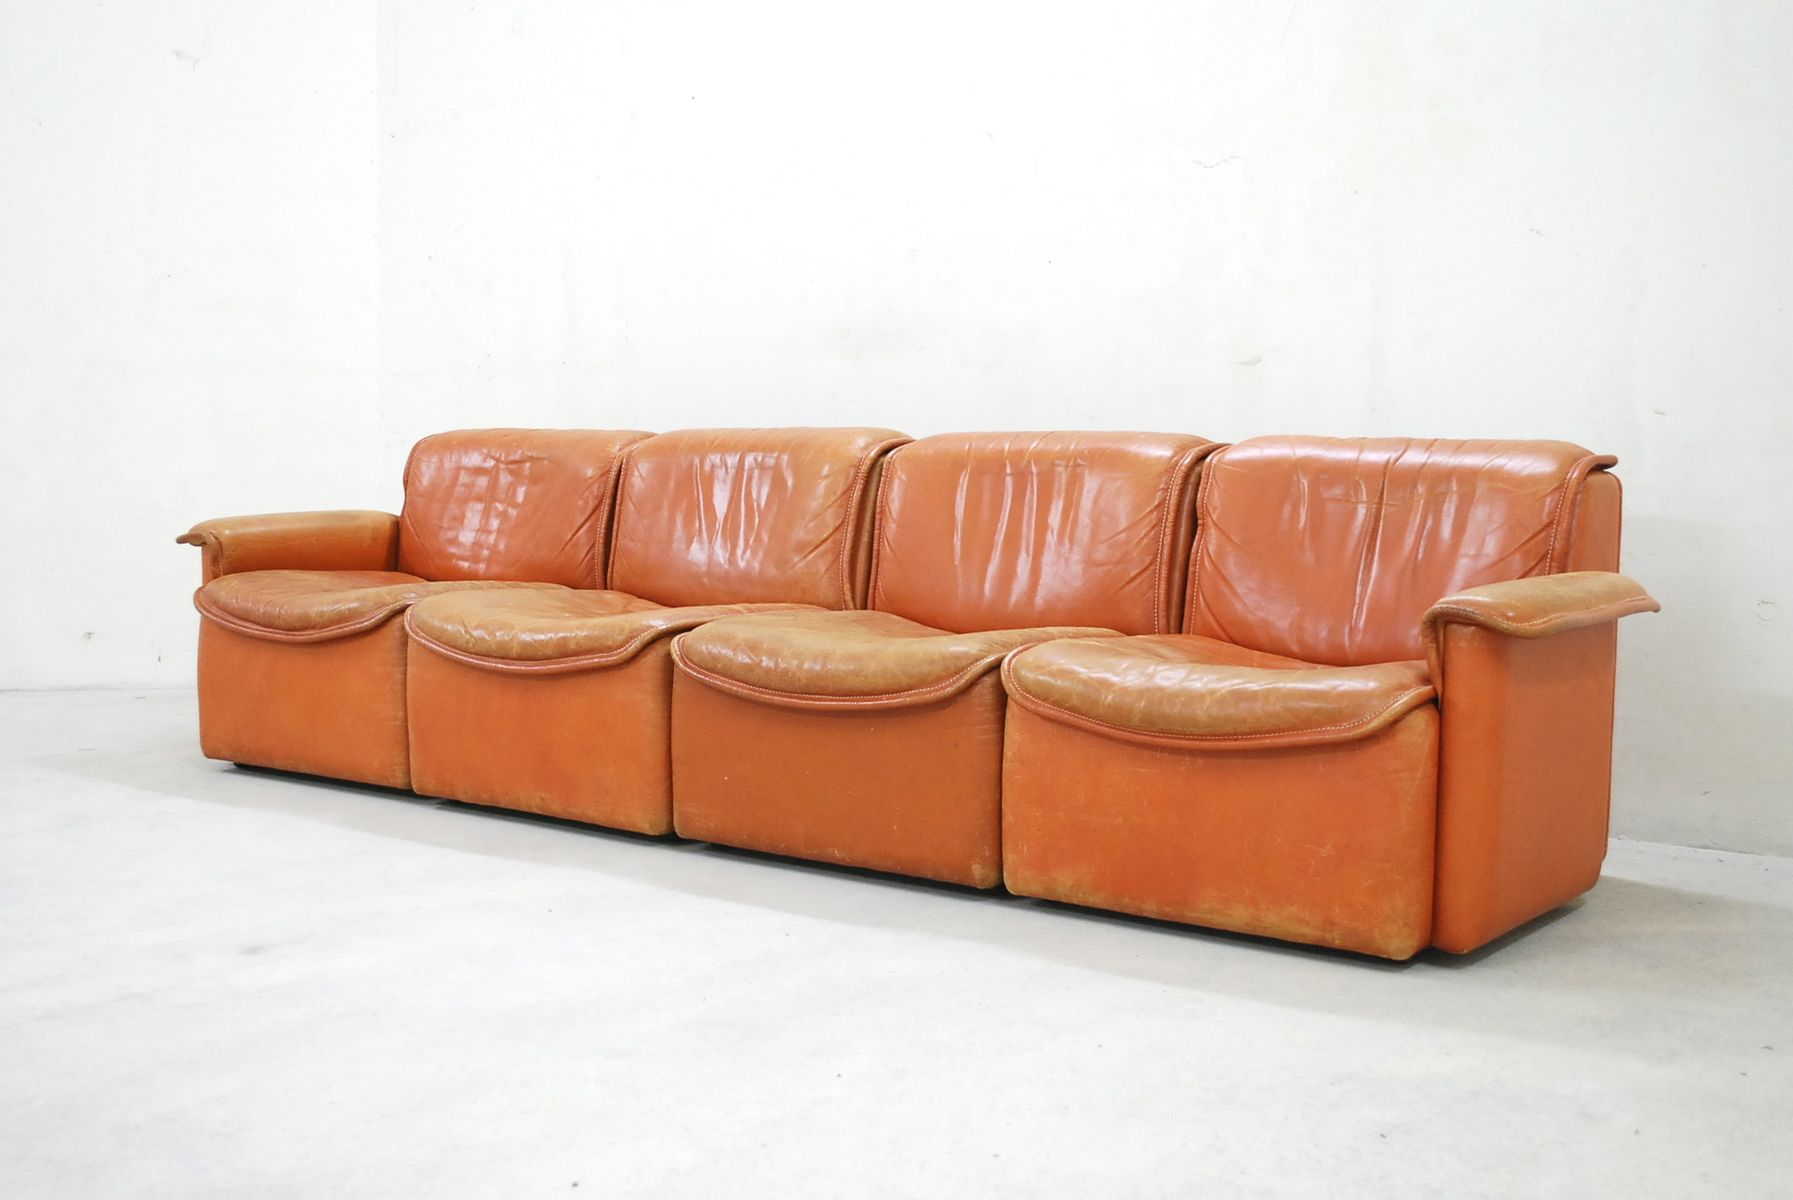 ds 12 modulares cognac ledersofa von de sede 1980 bei pamono kaufen. Black Bedroom Furniture Sets. Home Design Ideas